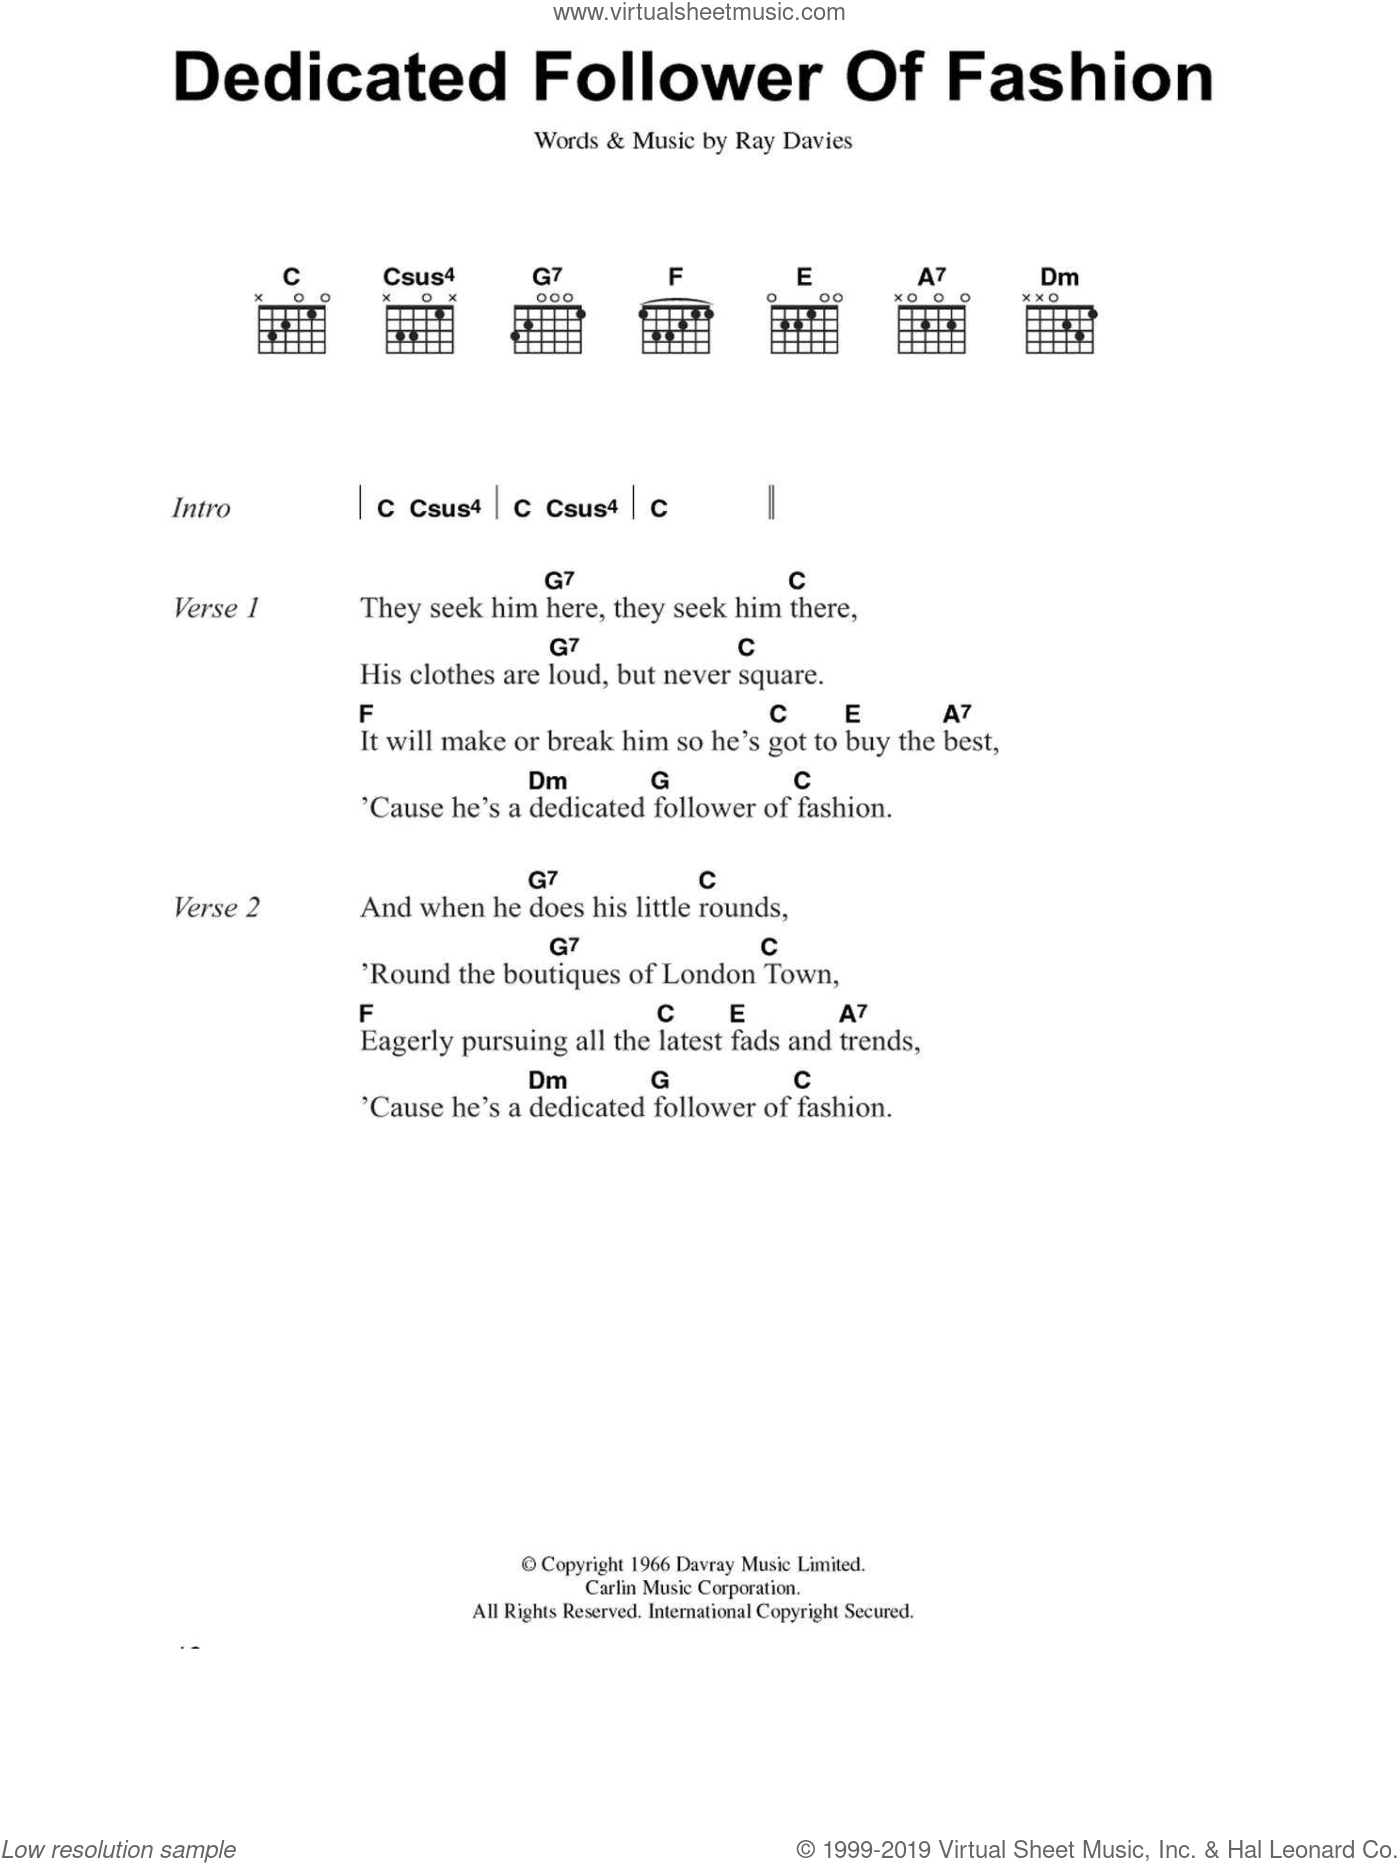 Dedicated Follower Of Fashion sheet music for guitar (chords) by Ray Davies. Score Image Preview.